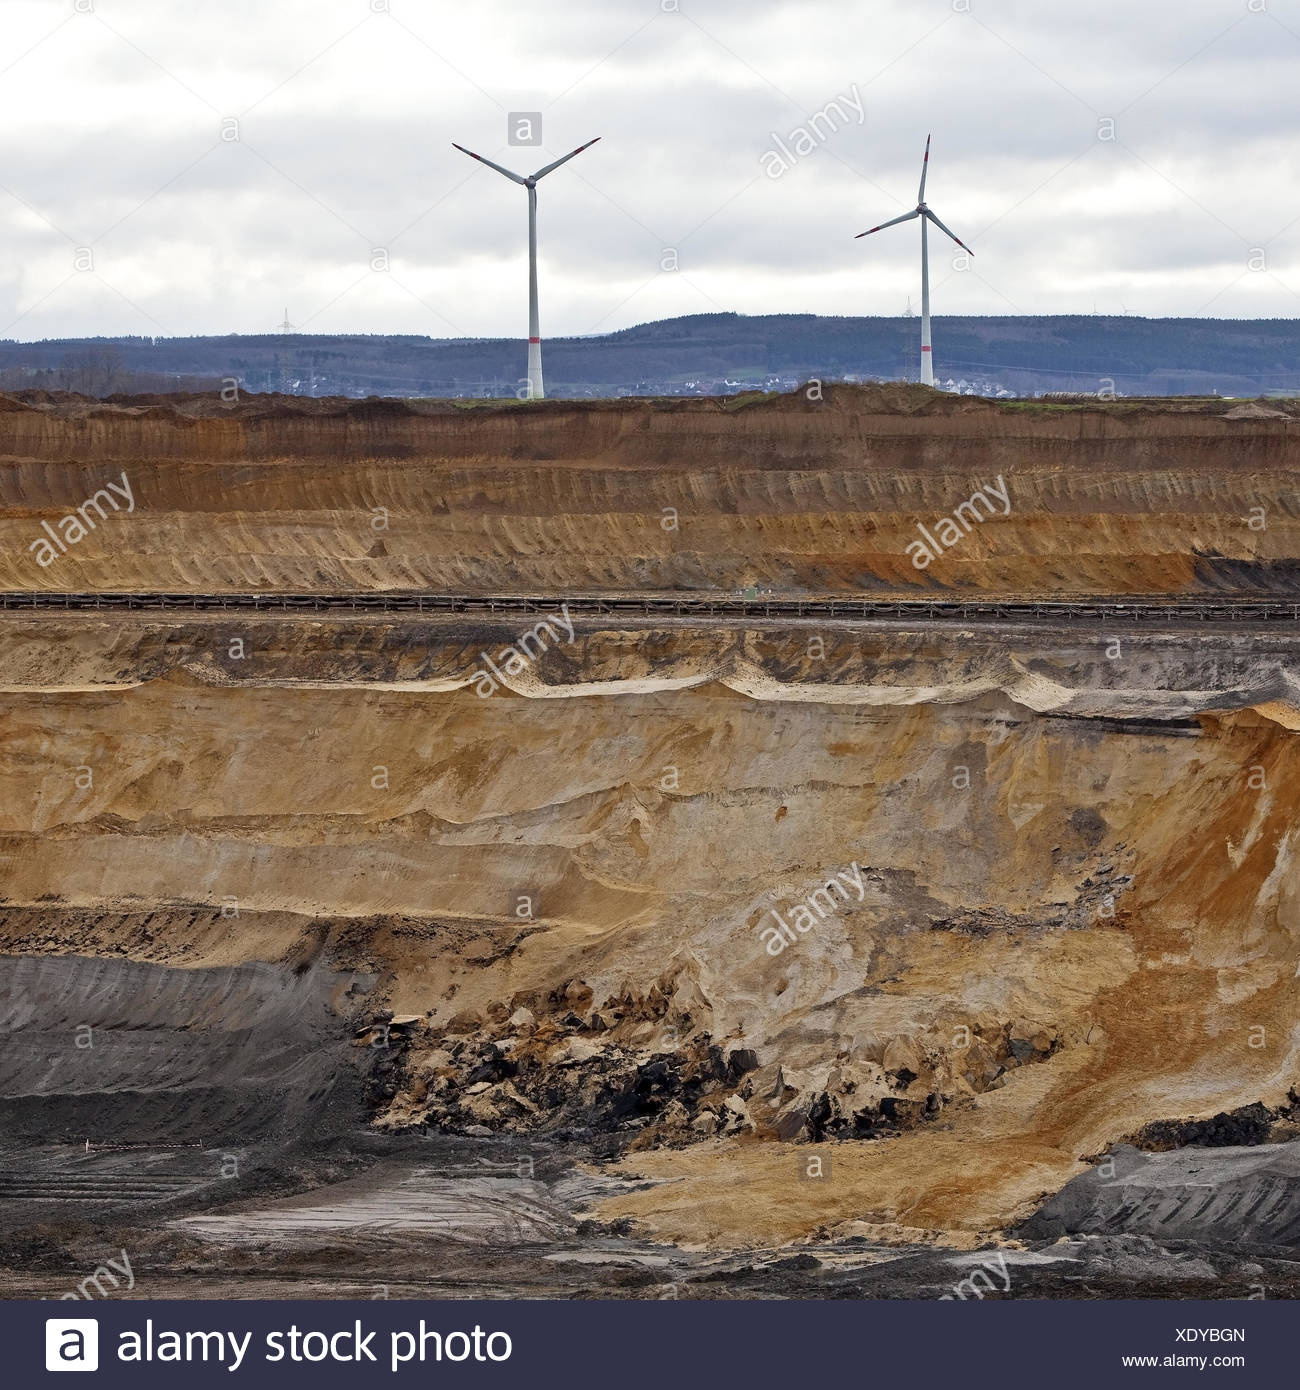 Wind turbines at brown coal surface mining Inden, North Rhine-Westphalia, Germany, Europe - Stock Image